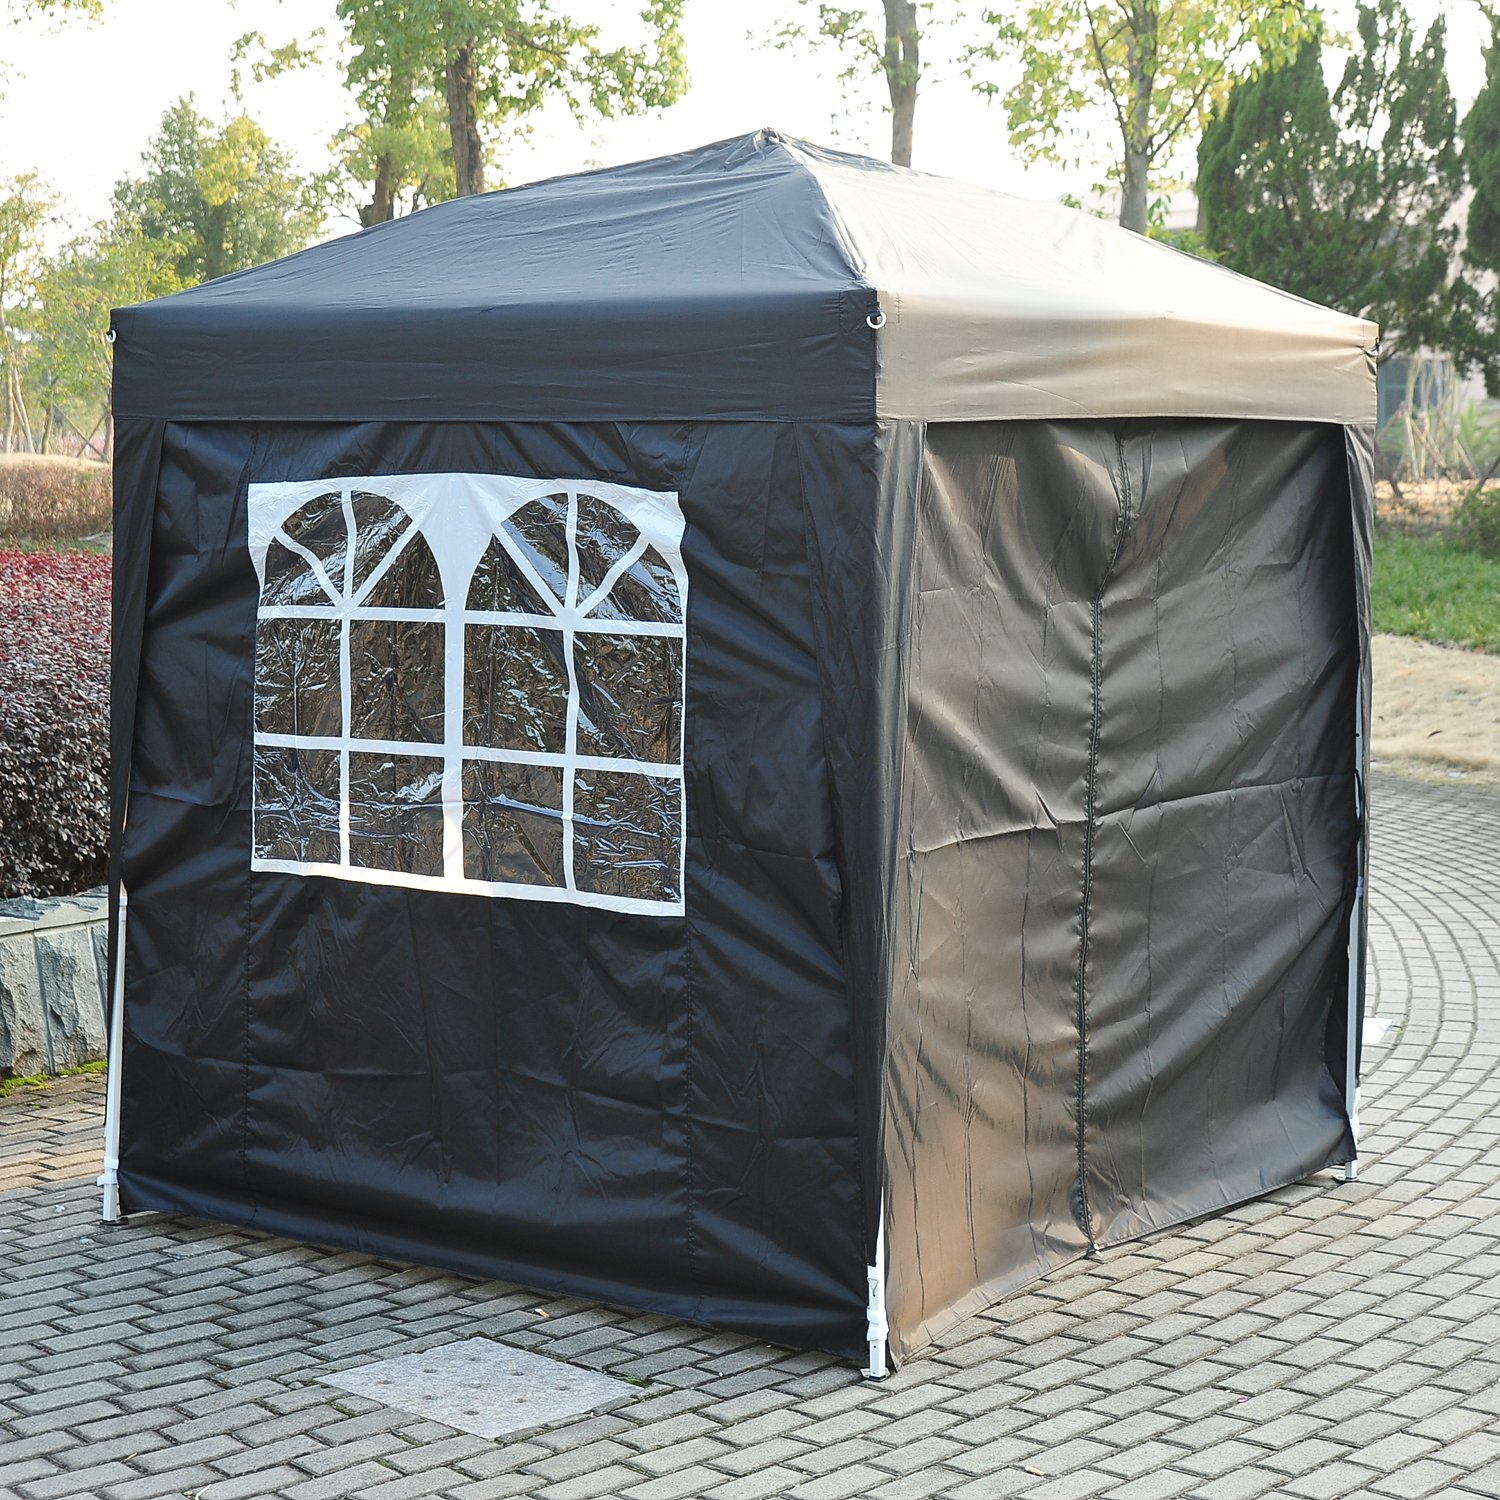 Outsunny 2m X Garden Heavy Duty Pop Up Gazebo Marquee Party Tent Wedding Canopy With Carry Bag Black Removable 2 Windows Doors Amazoncouk